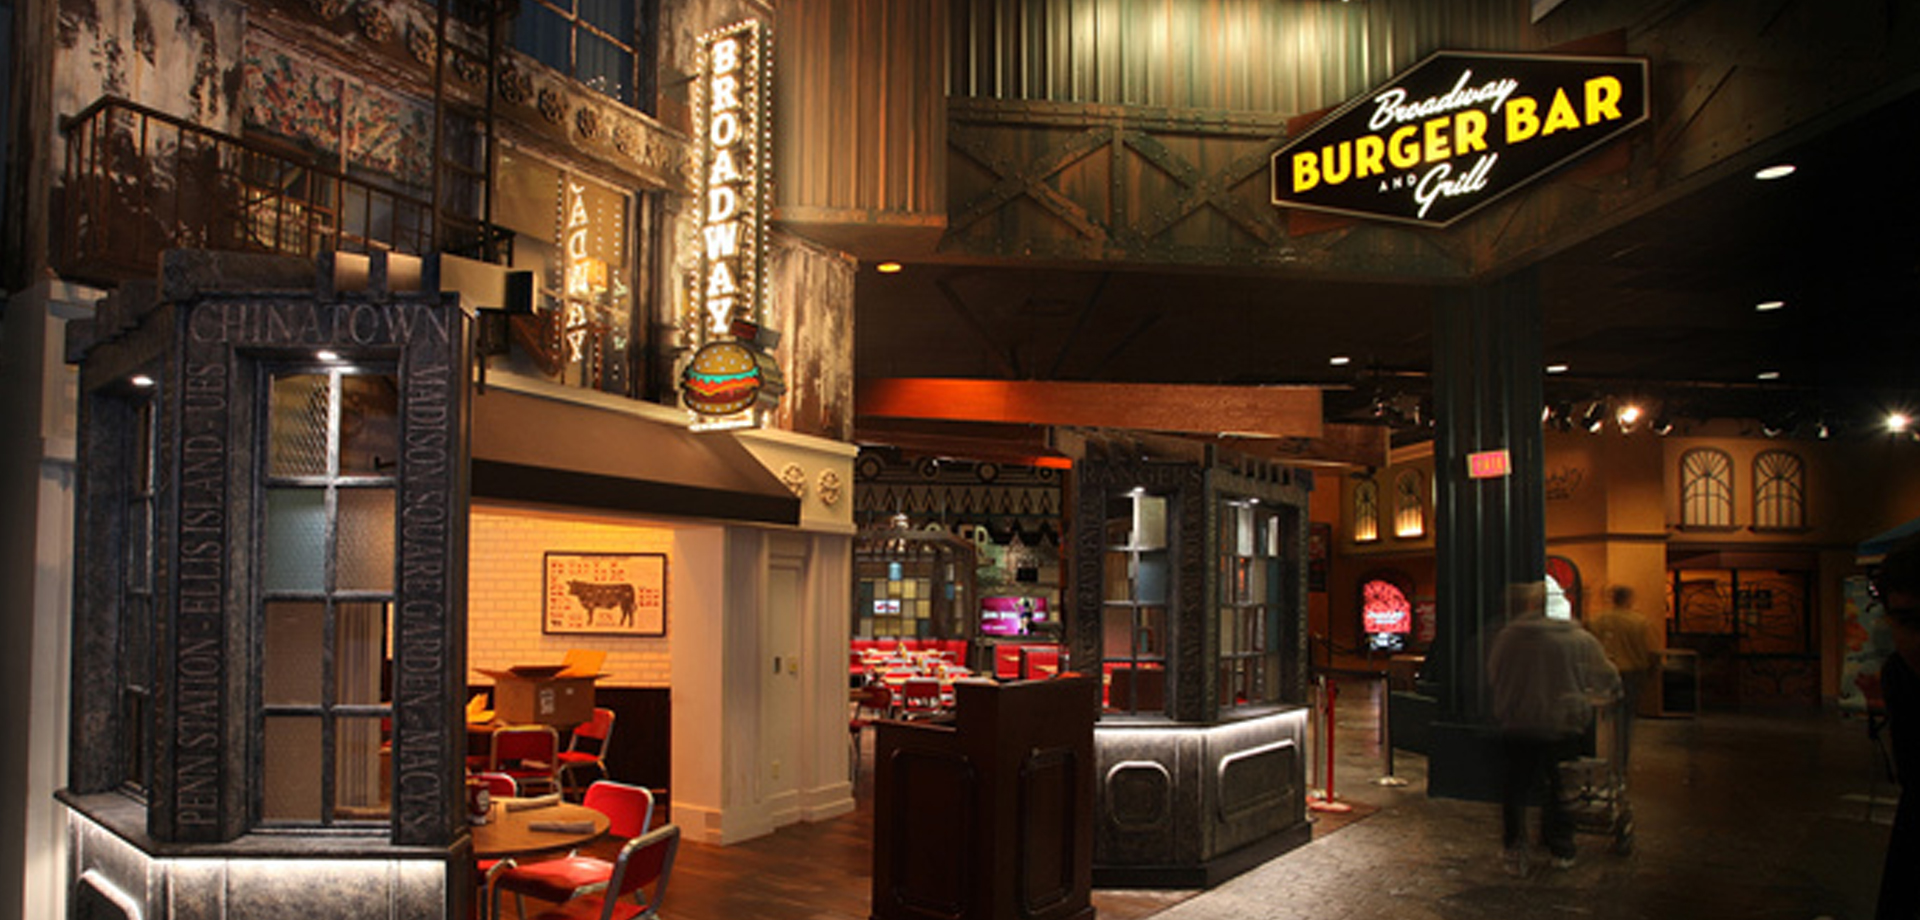 The exterior of the Broadway Burger Bar and Grill restaurant inside the New York New York hotel